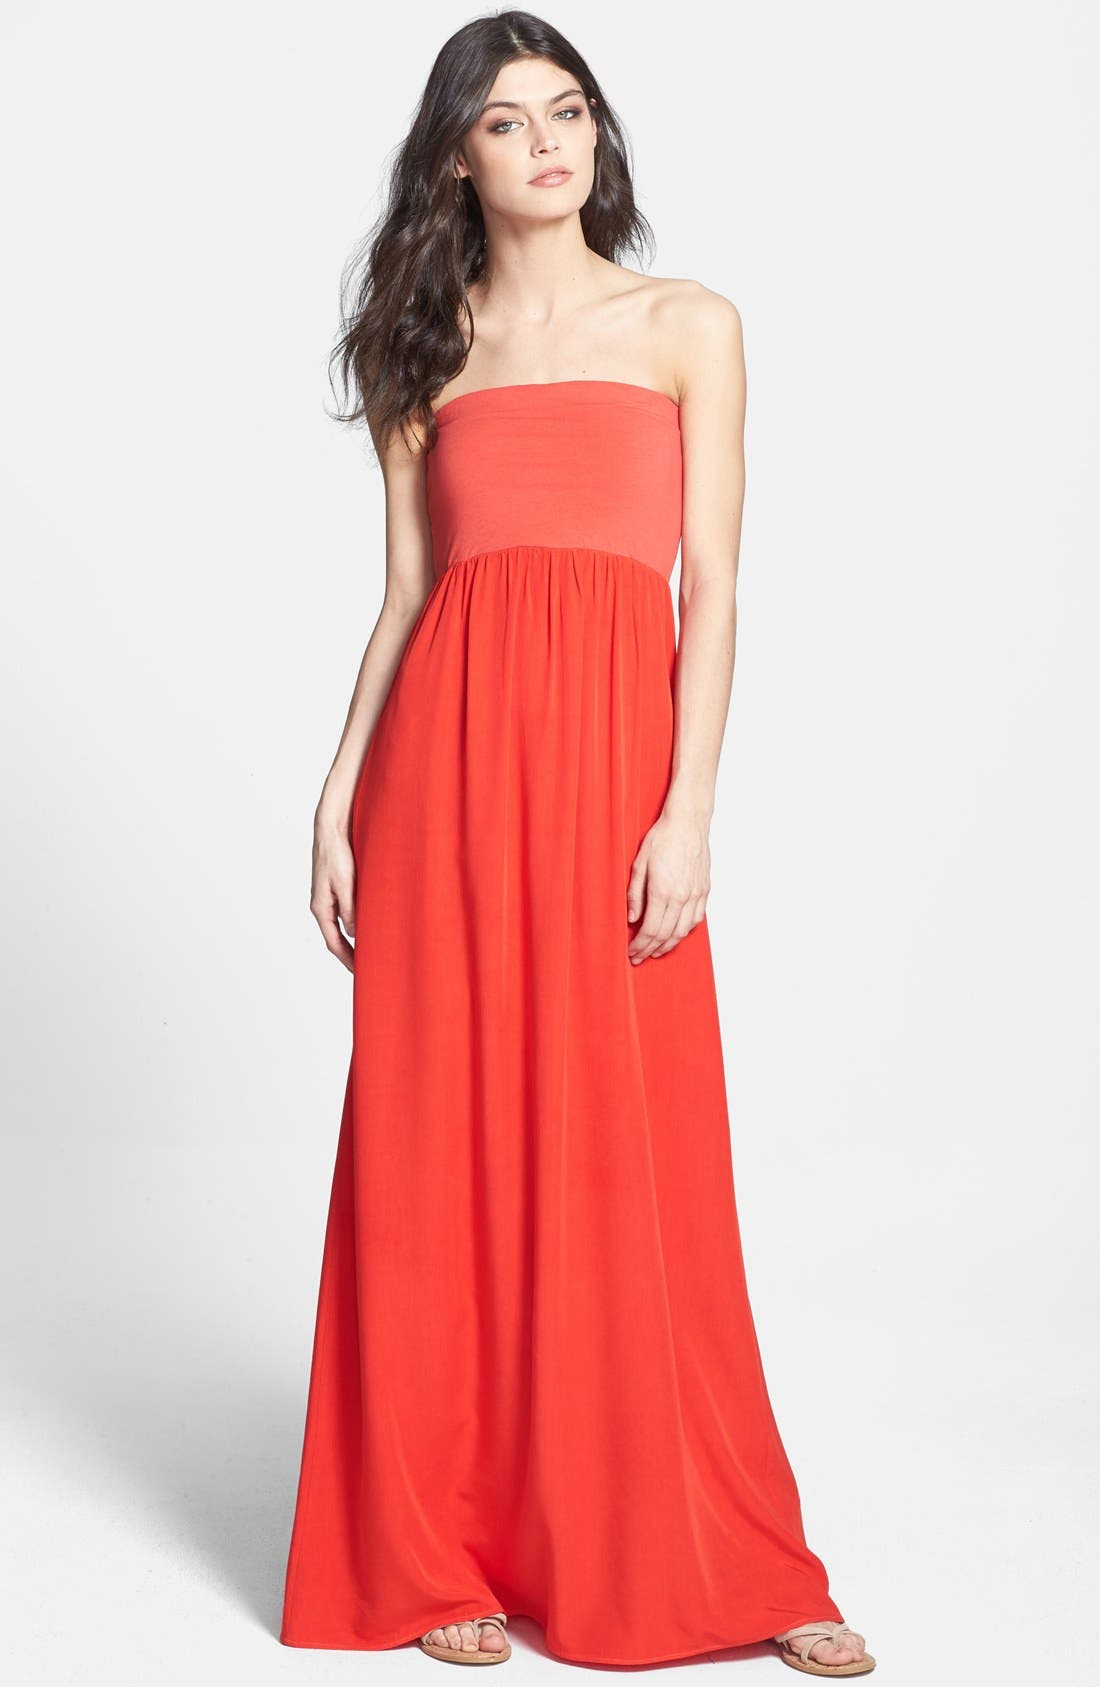 Alternate Image 1 Selected - Splendid Strapless Knit Maxi Dress